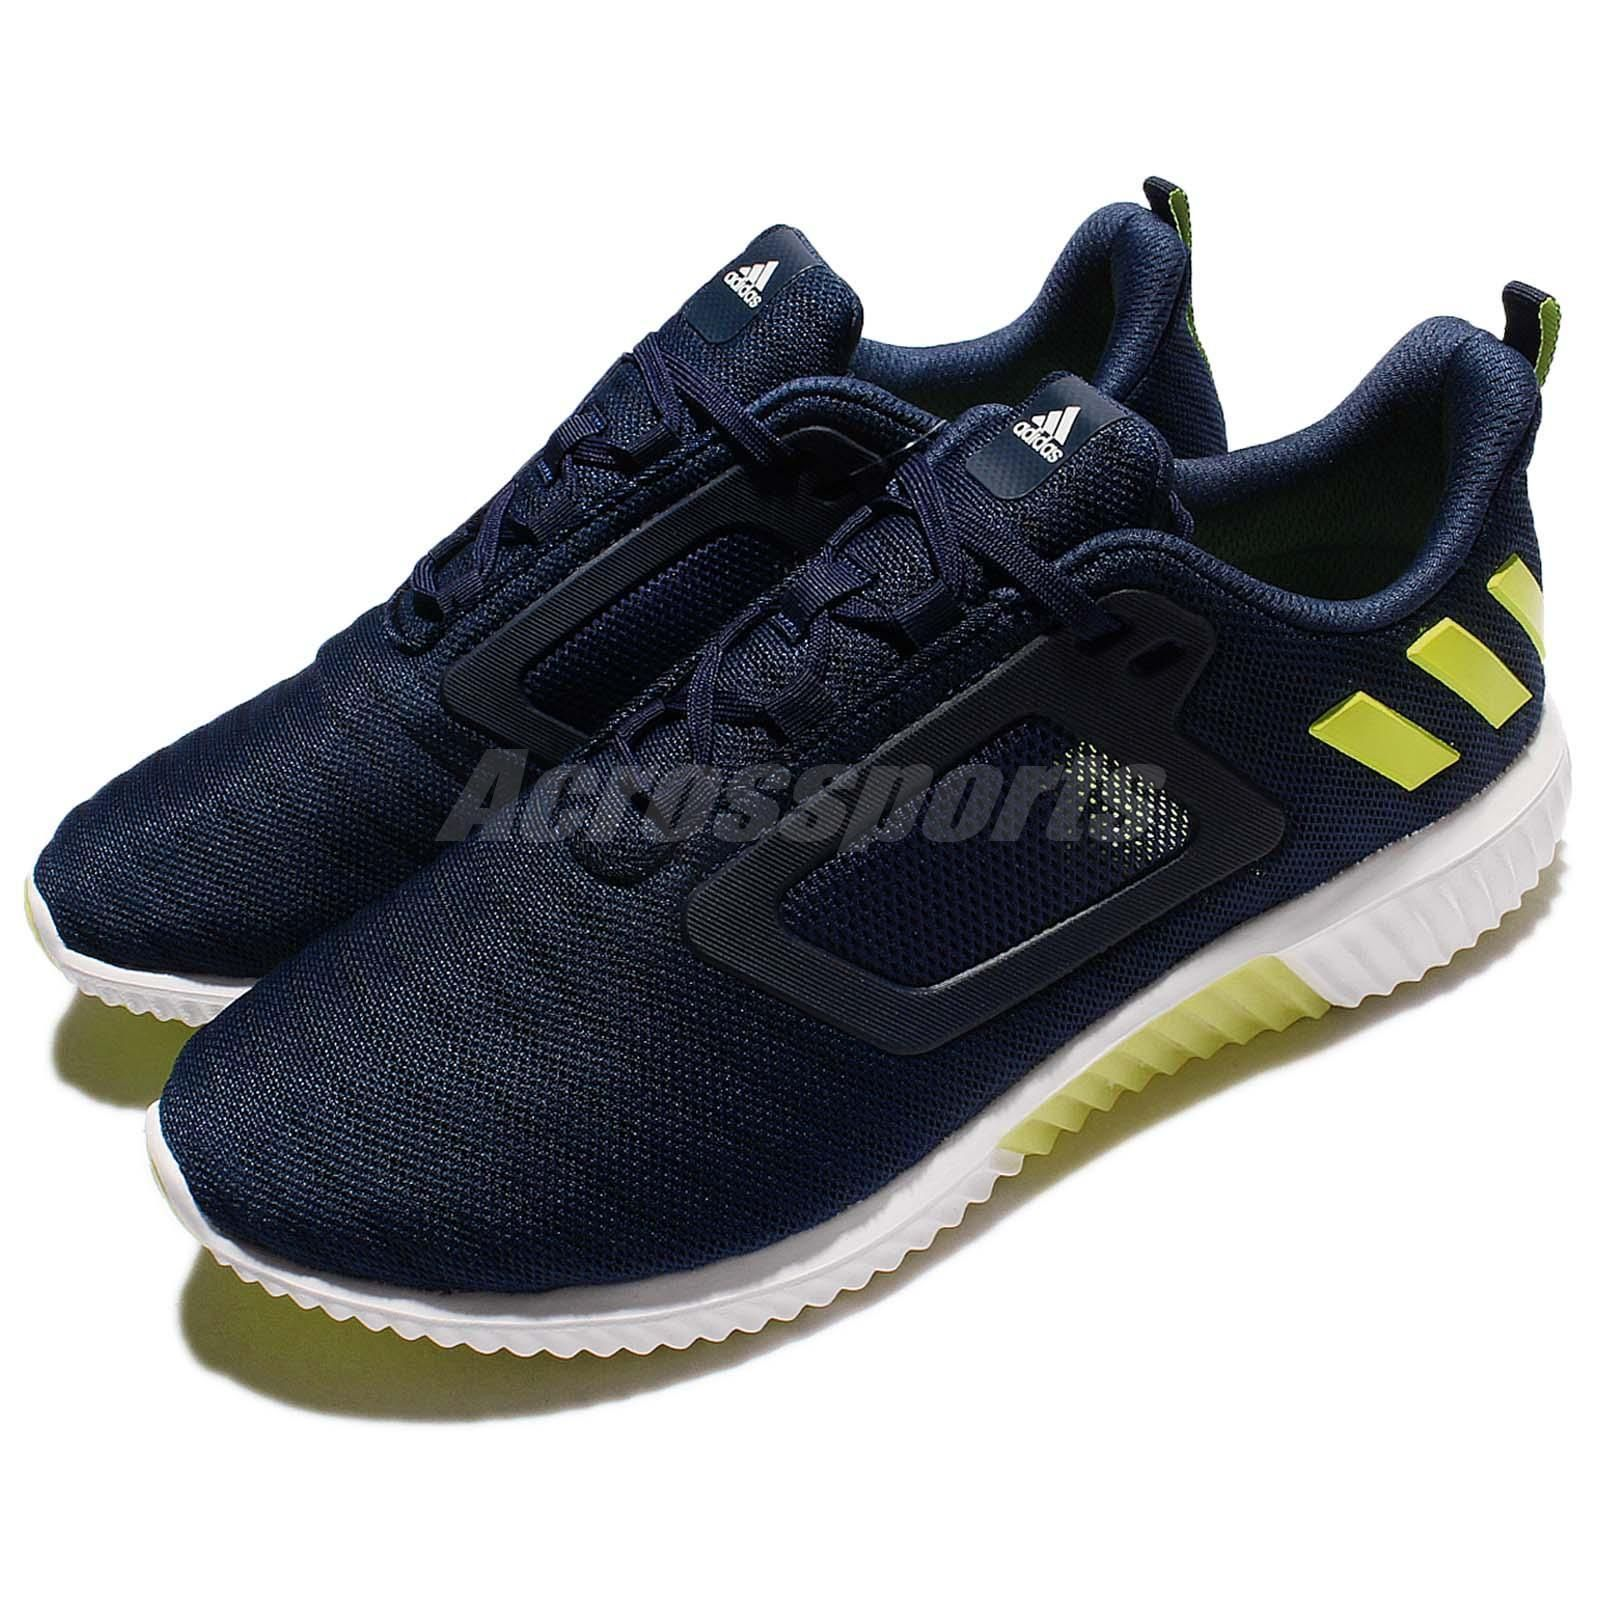 2db472198 ... czech adidas climacool m bounce blue men running shoes sneakers  trainers cg3691 f4dac a0e8d